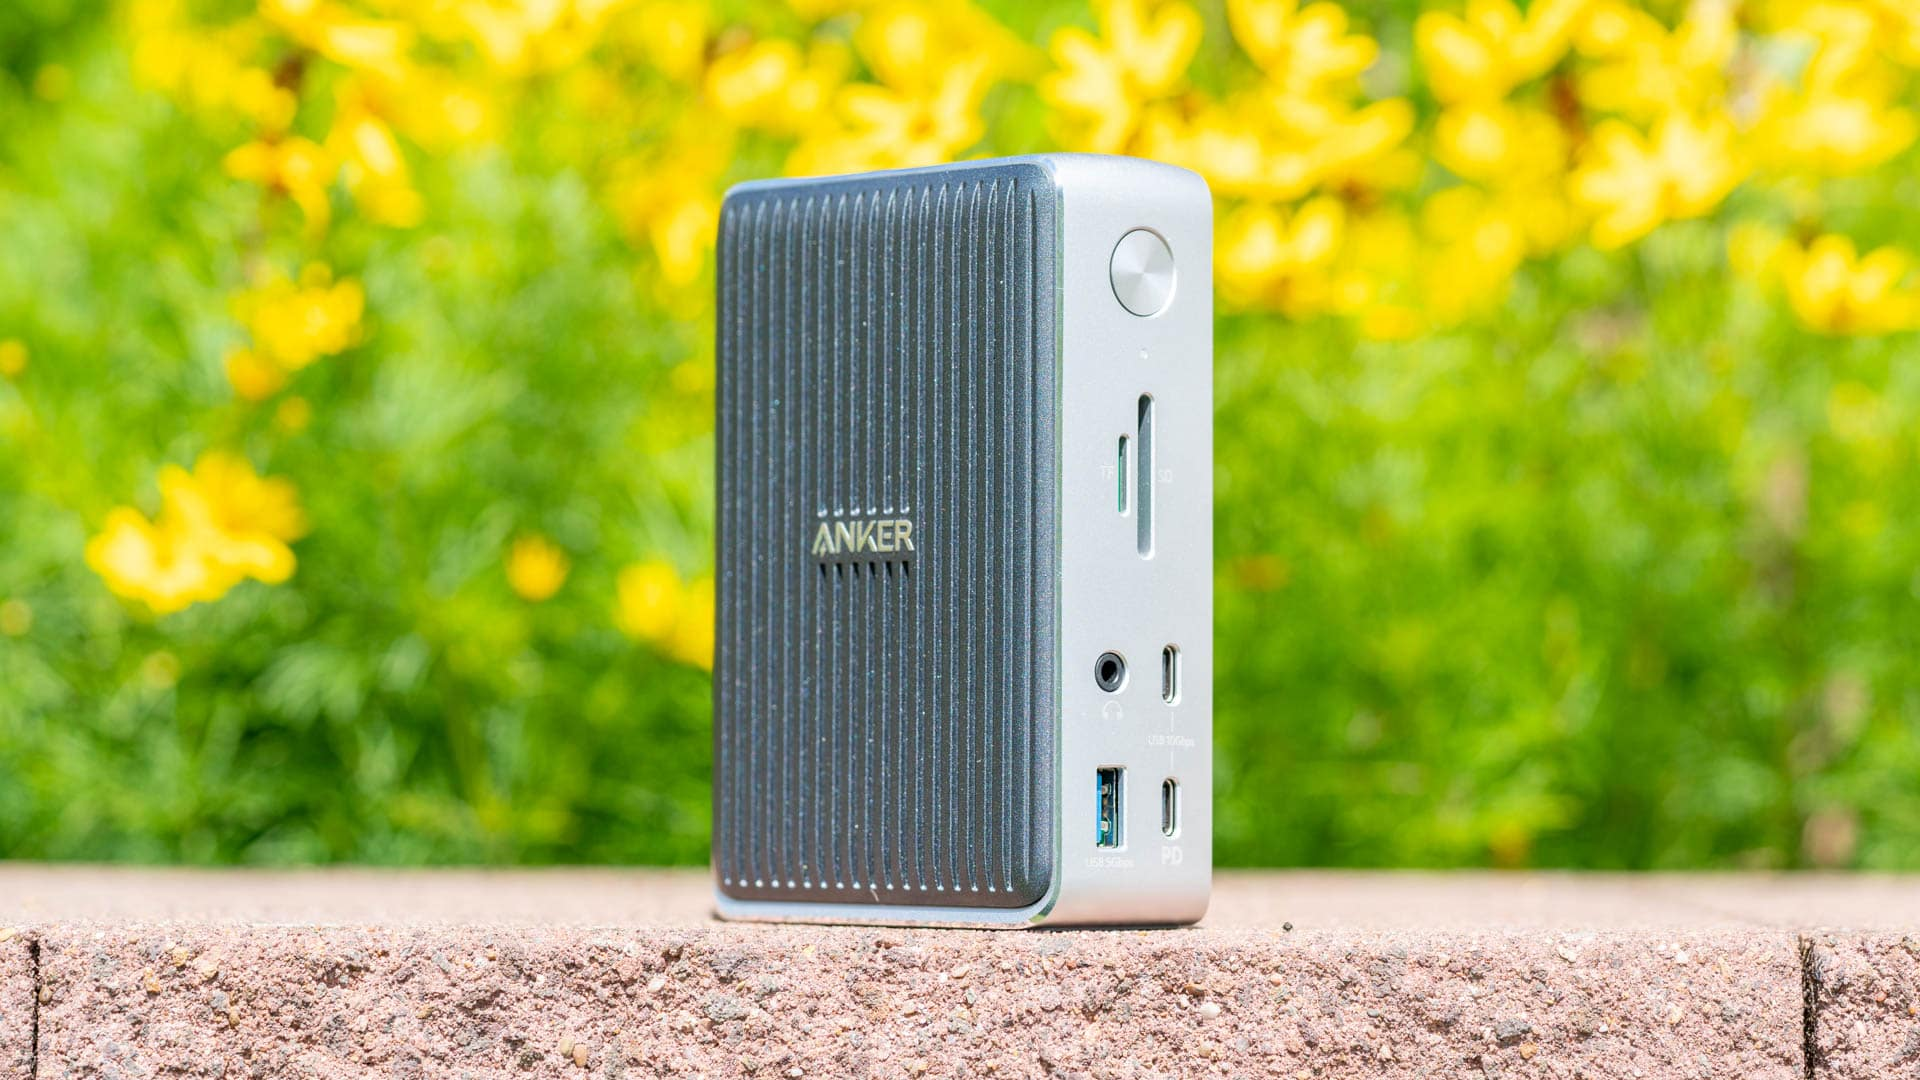 Die Anker PowerExpand Elite 13-in-1 Thunderbolt 3 Docking Station im Test